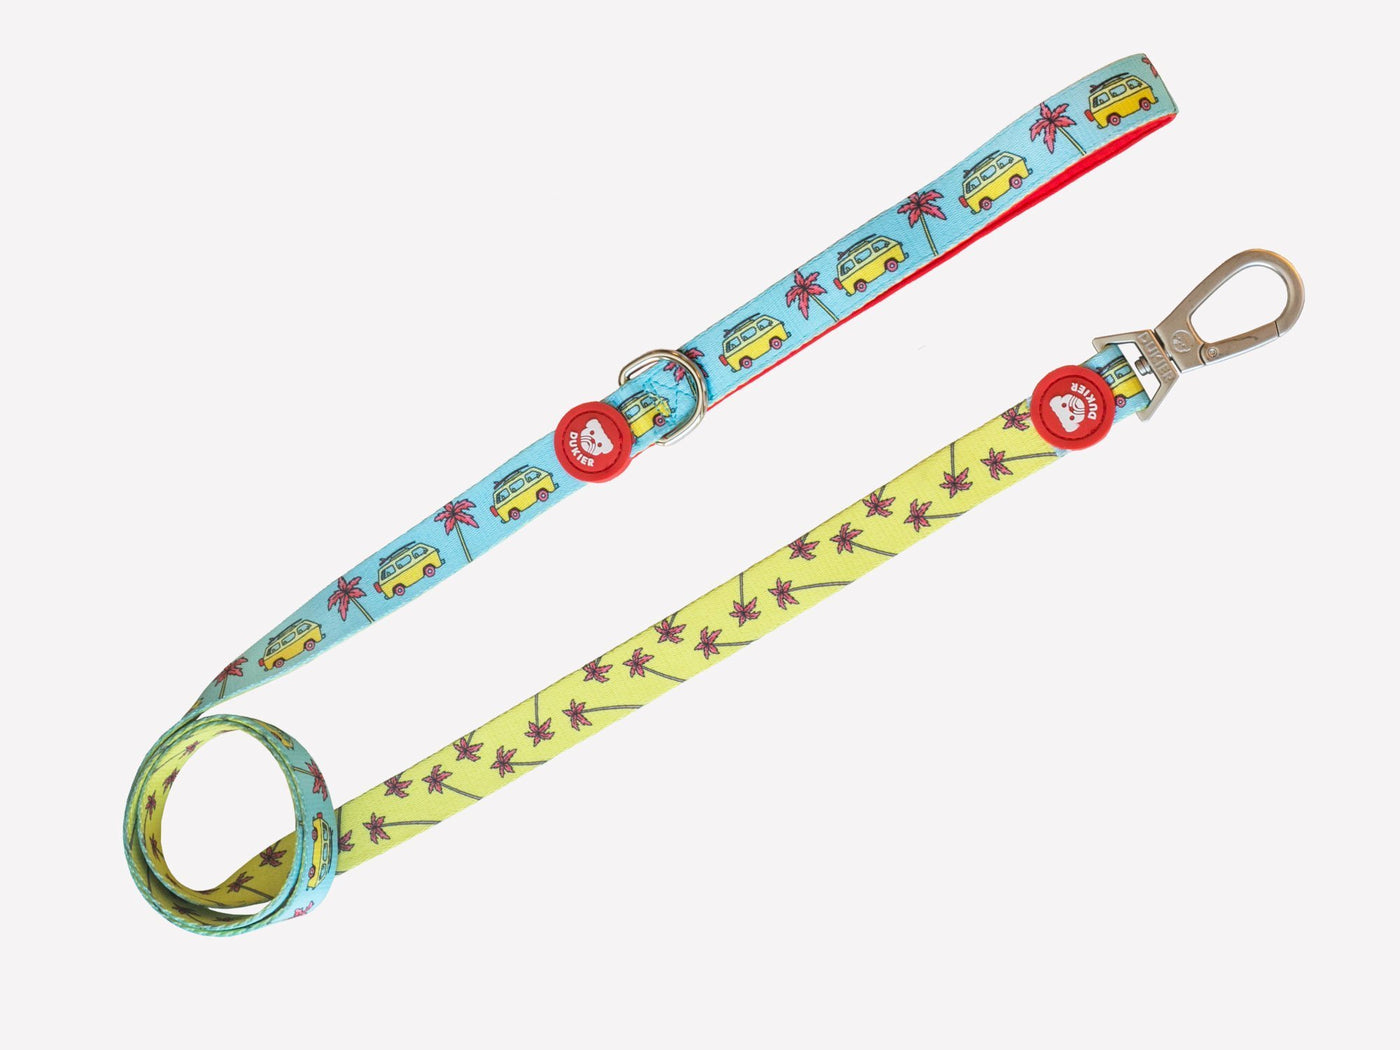 CALIFORNIA LEASH FOR DOGS - Dukier Store